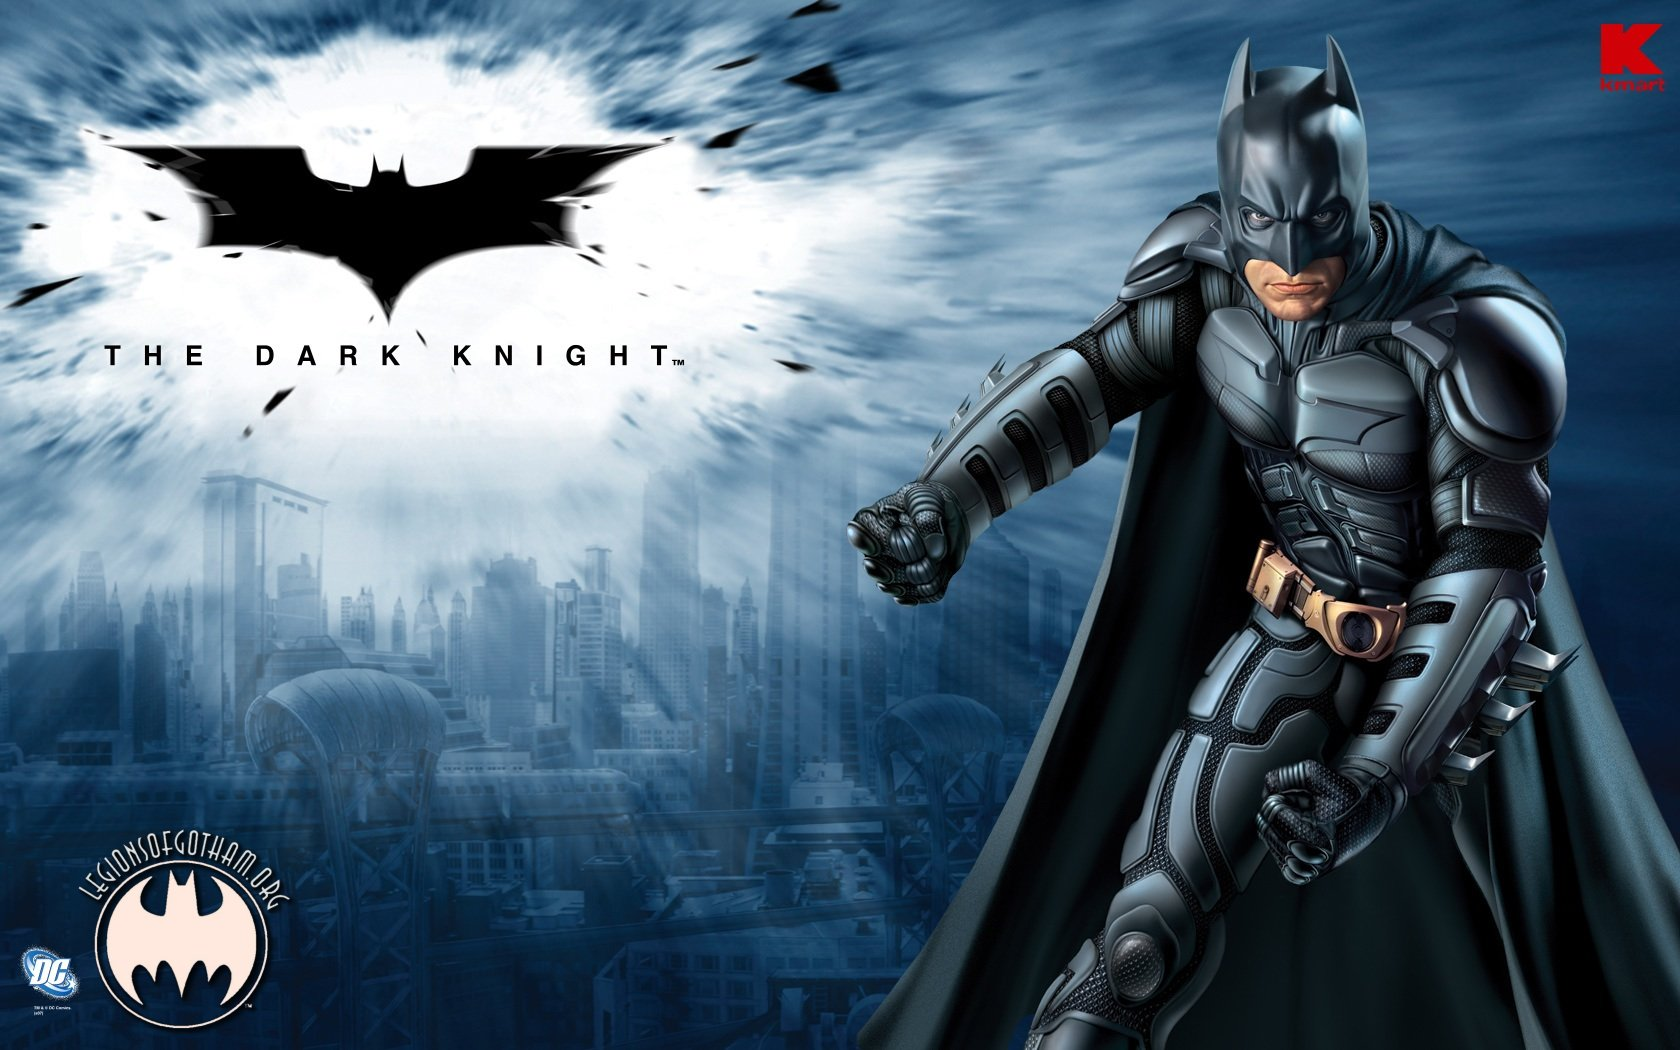 Batman the dark knight wallpaper wallpapersafari for Dark knight rises wall mural